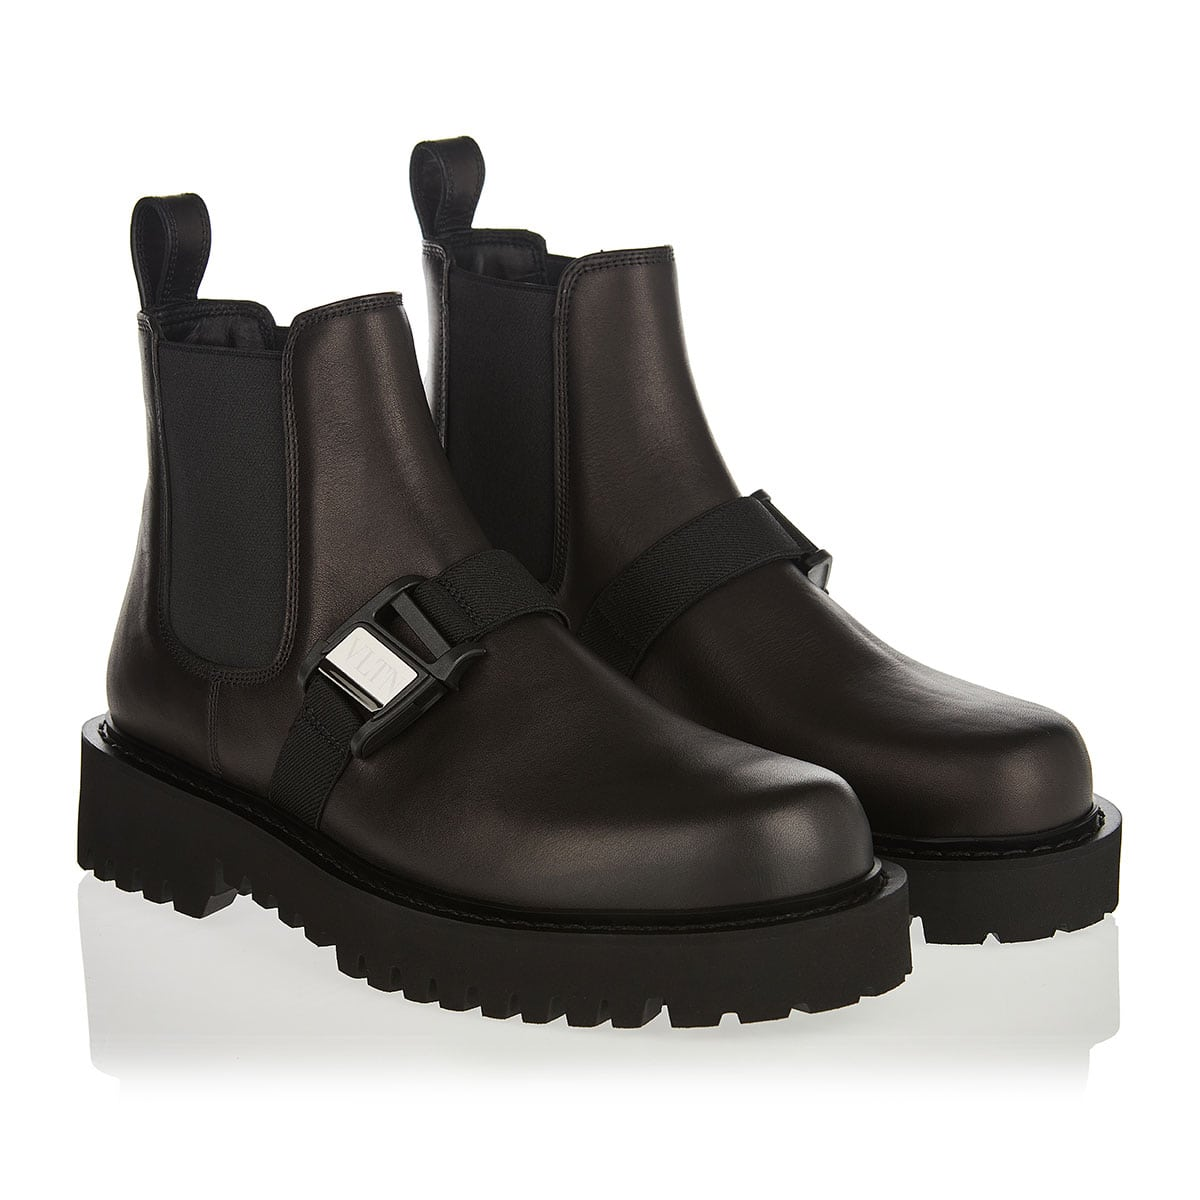 VLTN leather beatle boots